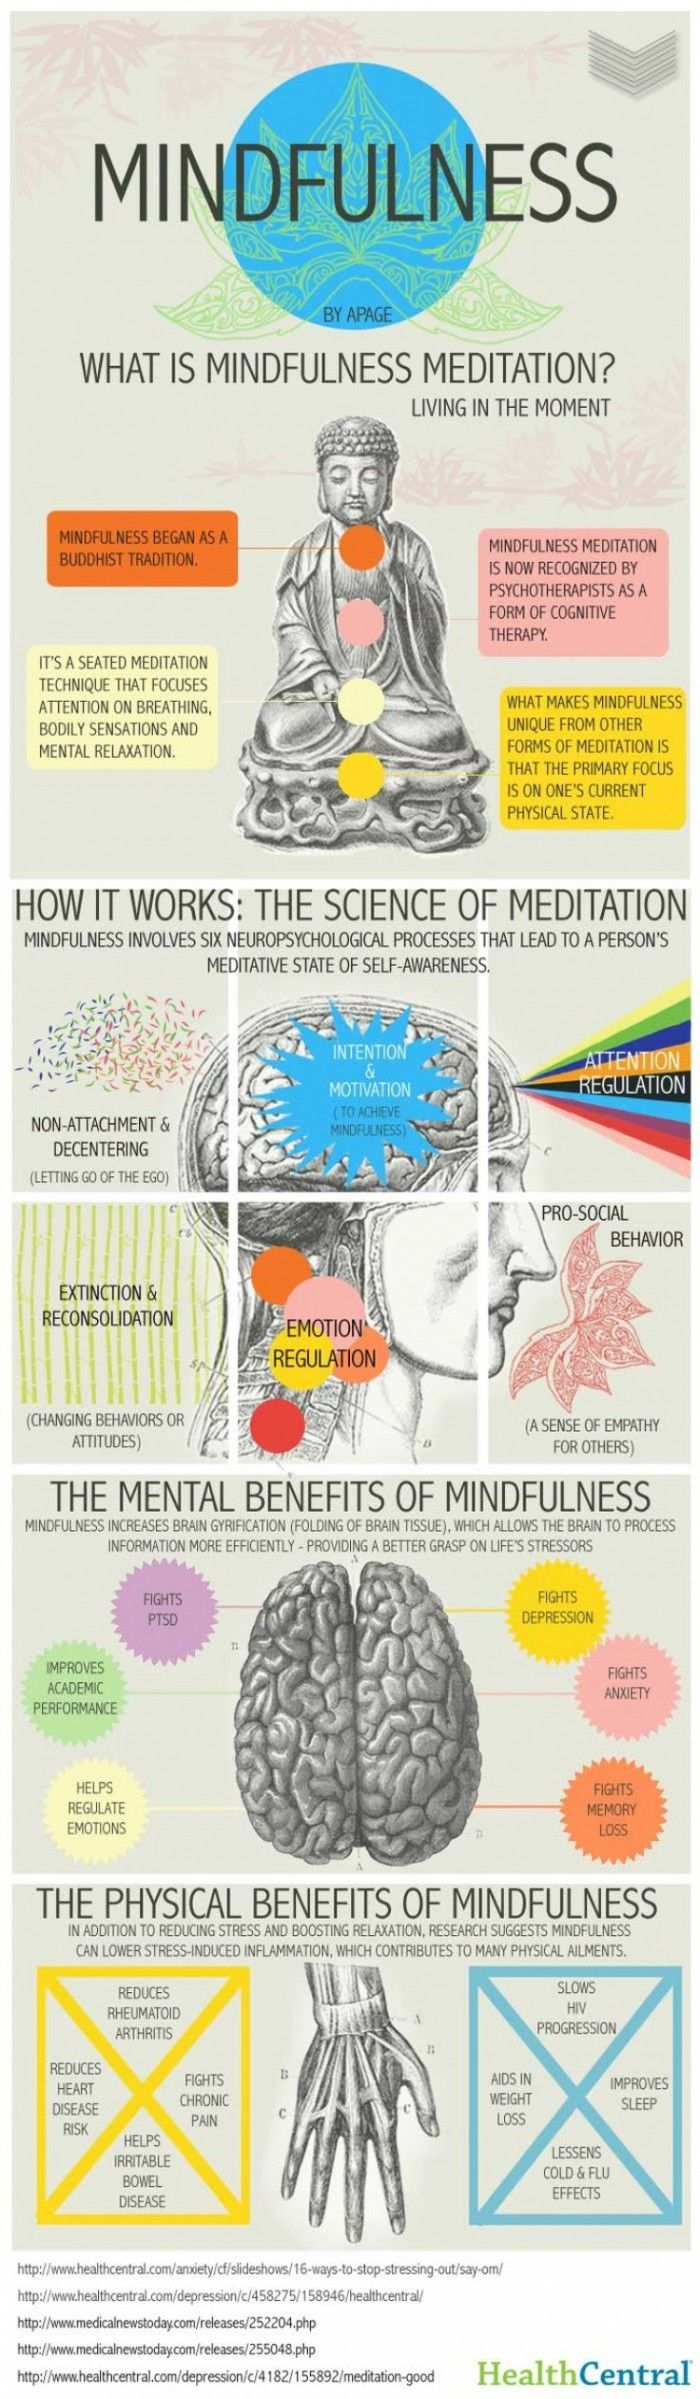 14 Benefits of Mindfulness (Meditation) | Lynn Hasselberger for Elephant Journal | #infographic #meditation #mindfulness